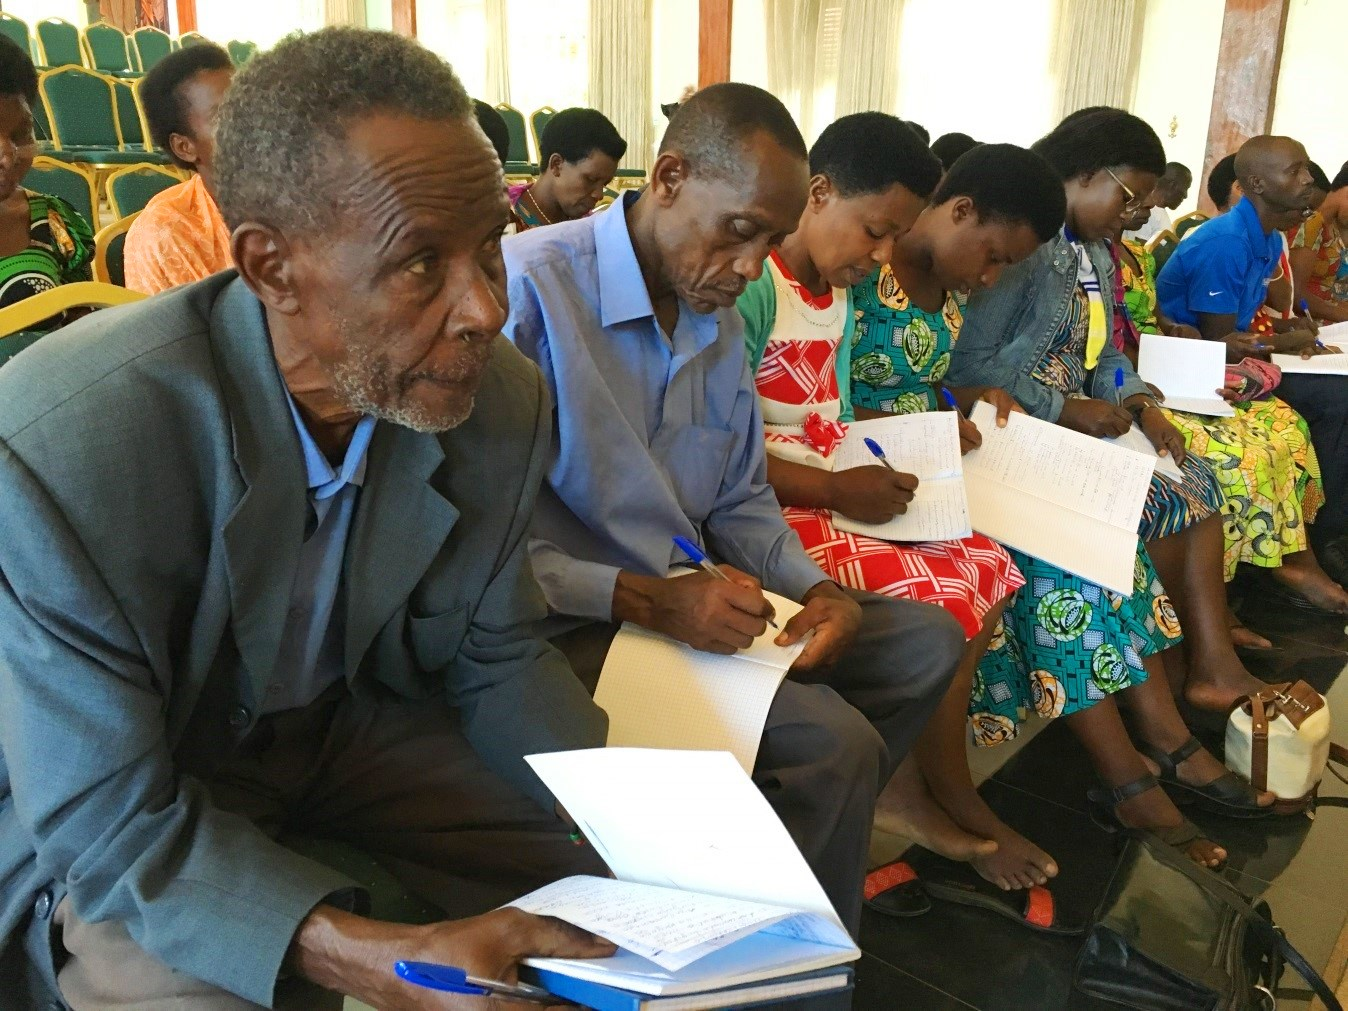 In May we held our annual BUSINESS TRAINING in Kigali for 60 co-op leaders, giving them the basic tools they need to run their fledgling enterprises.